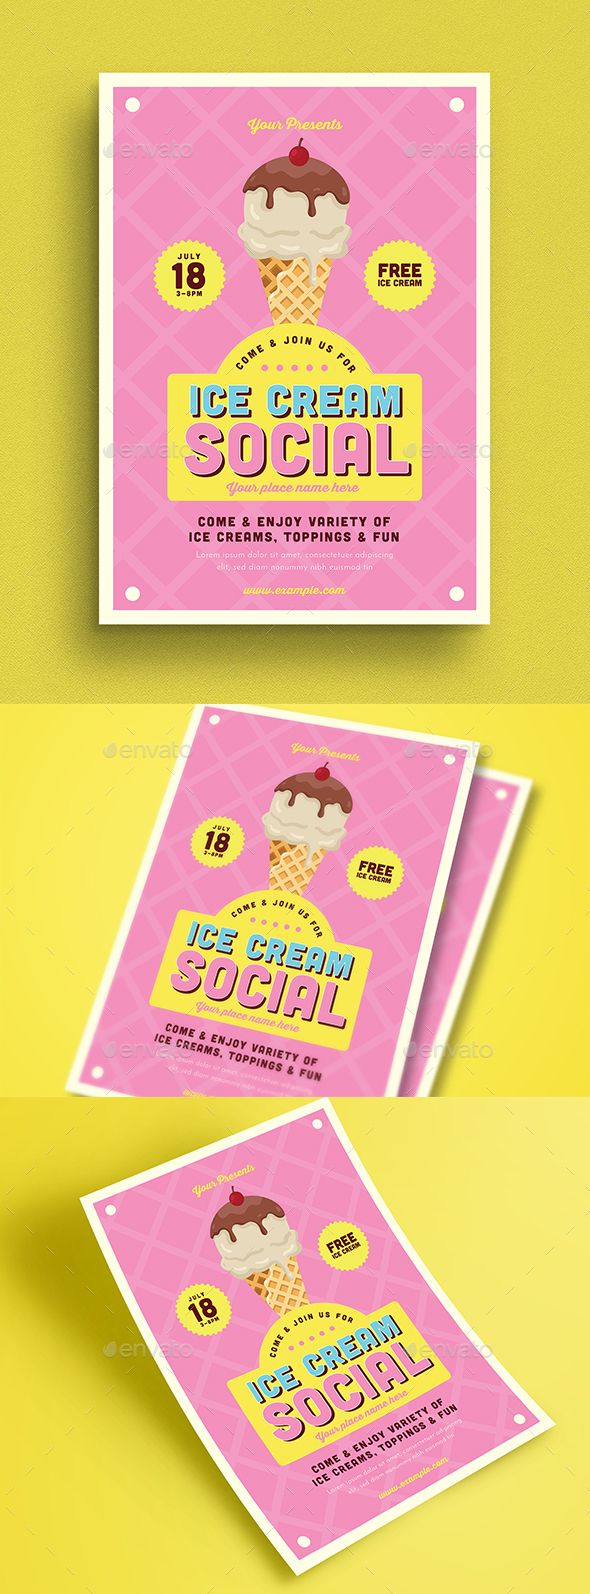 Ice Cream Social Flyer Design Template PSD, AI Illustrator. Download here: graph...